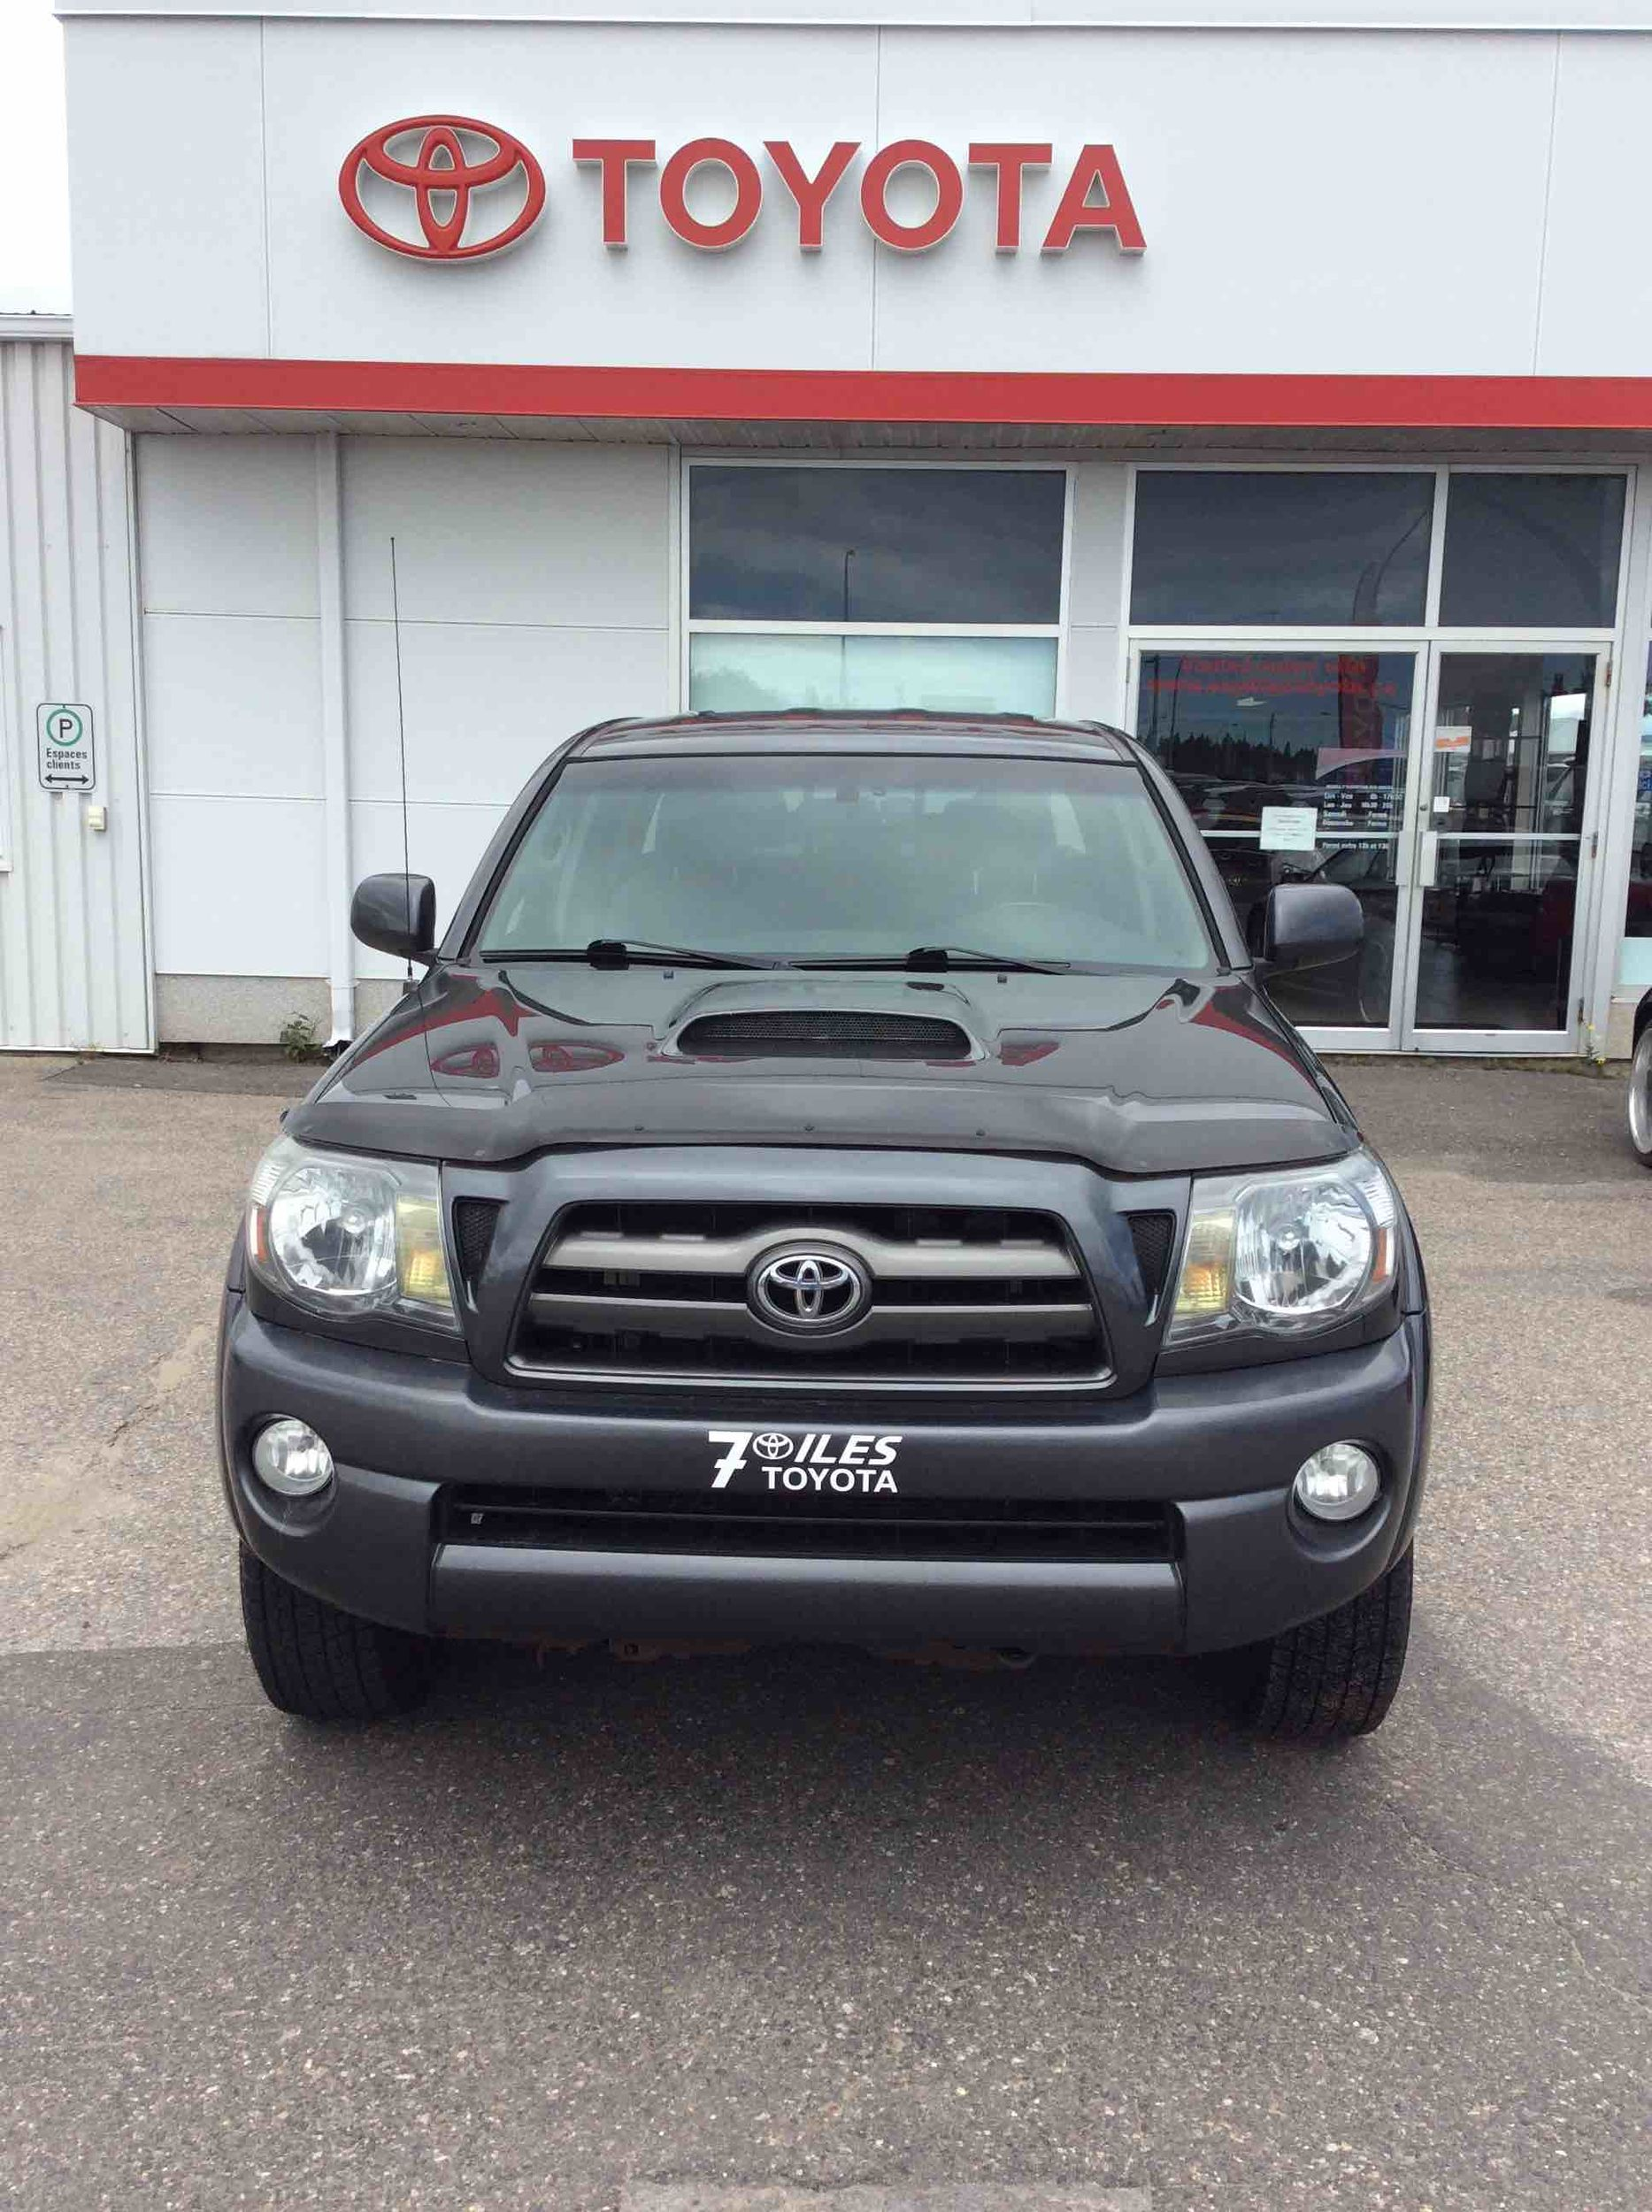 2010 Toyota Tacoma Fog Lights Light Wiring Diagram Used In Sept Iles Inventory Quebec